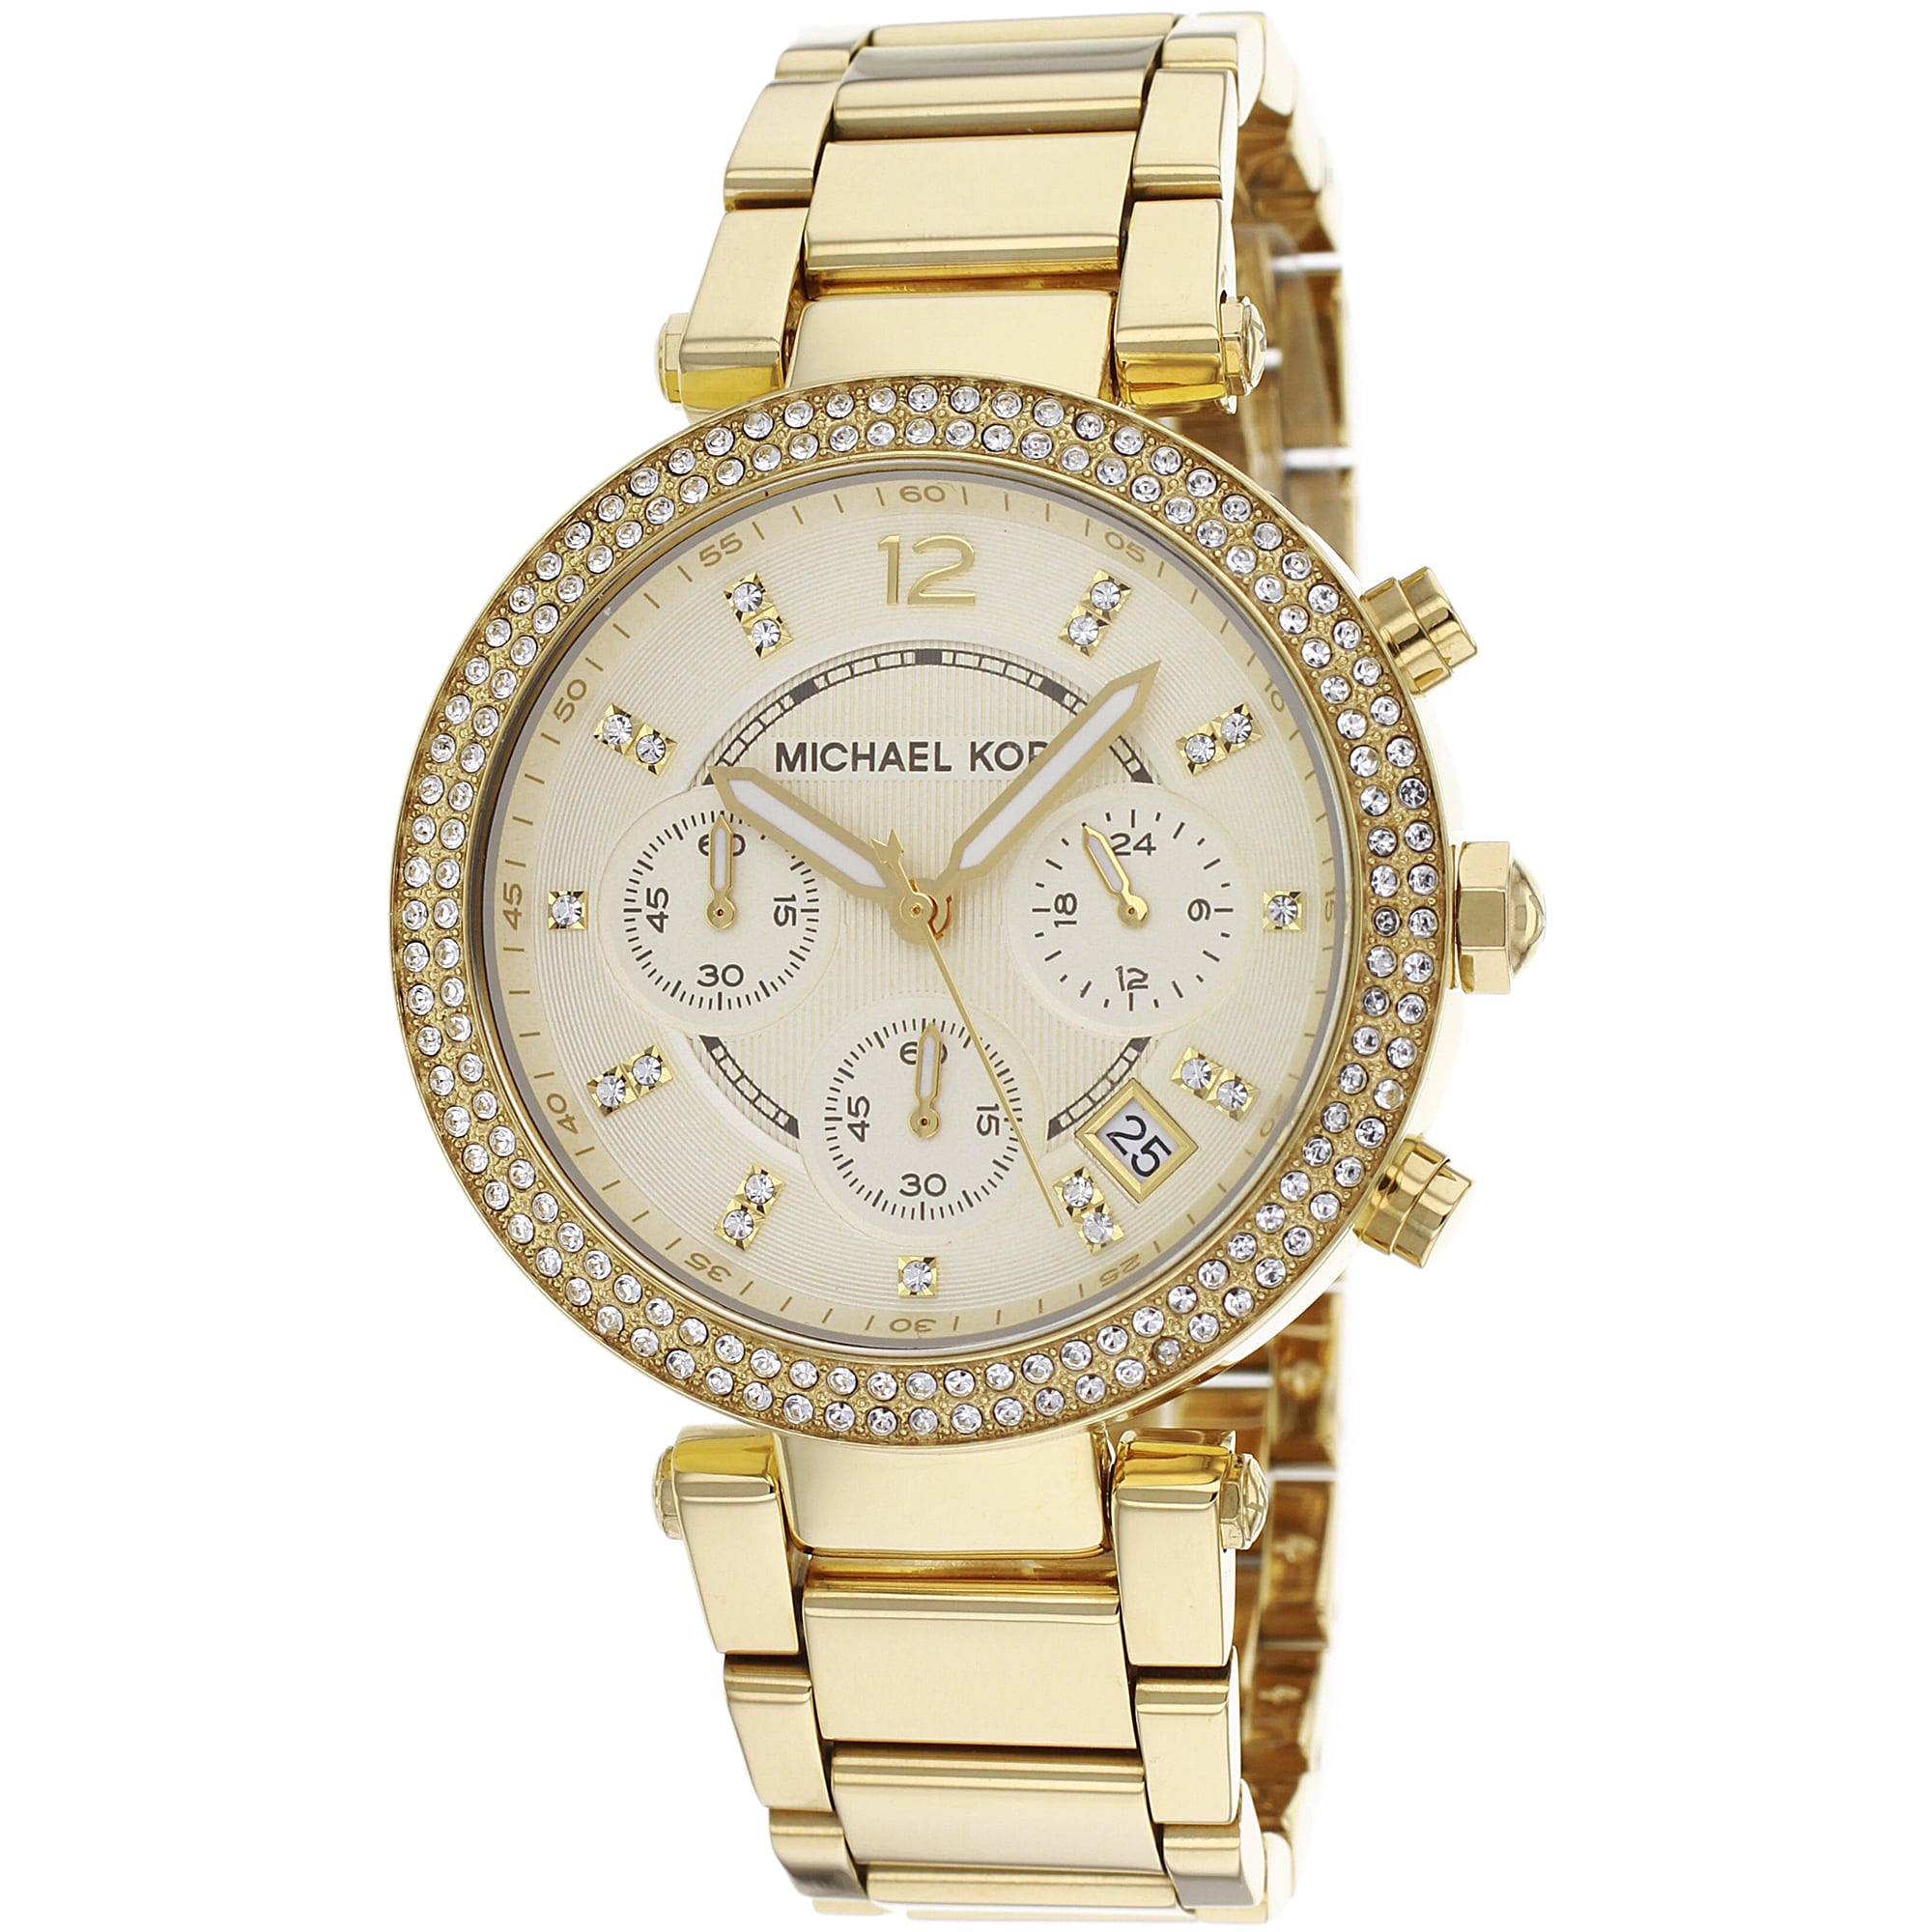 c4ceb989be6 Michael Kors Women s MK5354  Parker  Yellow Gold Stainless Steel Watch